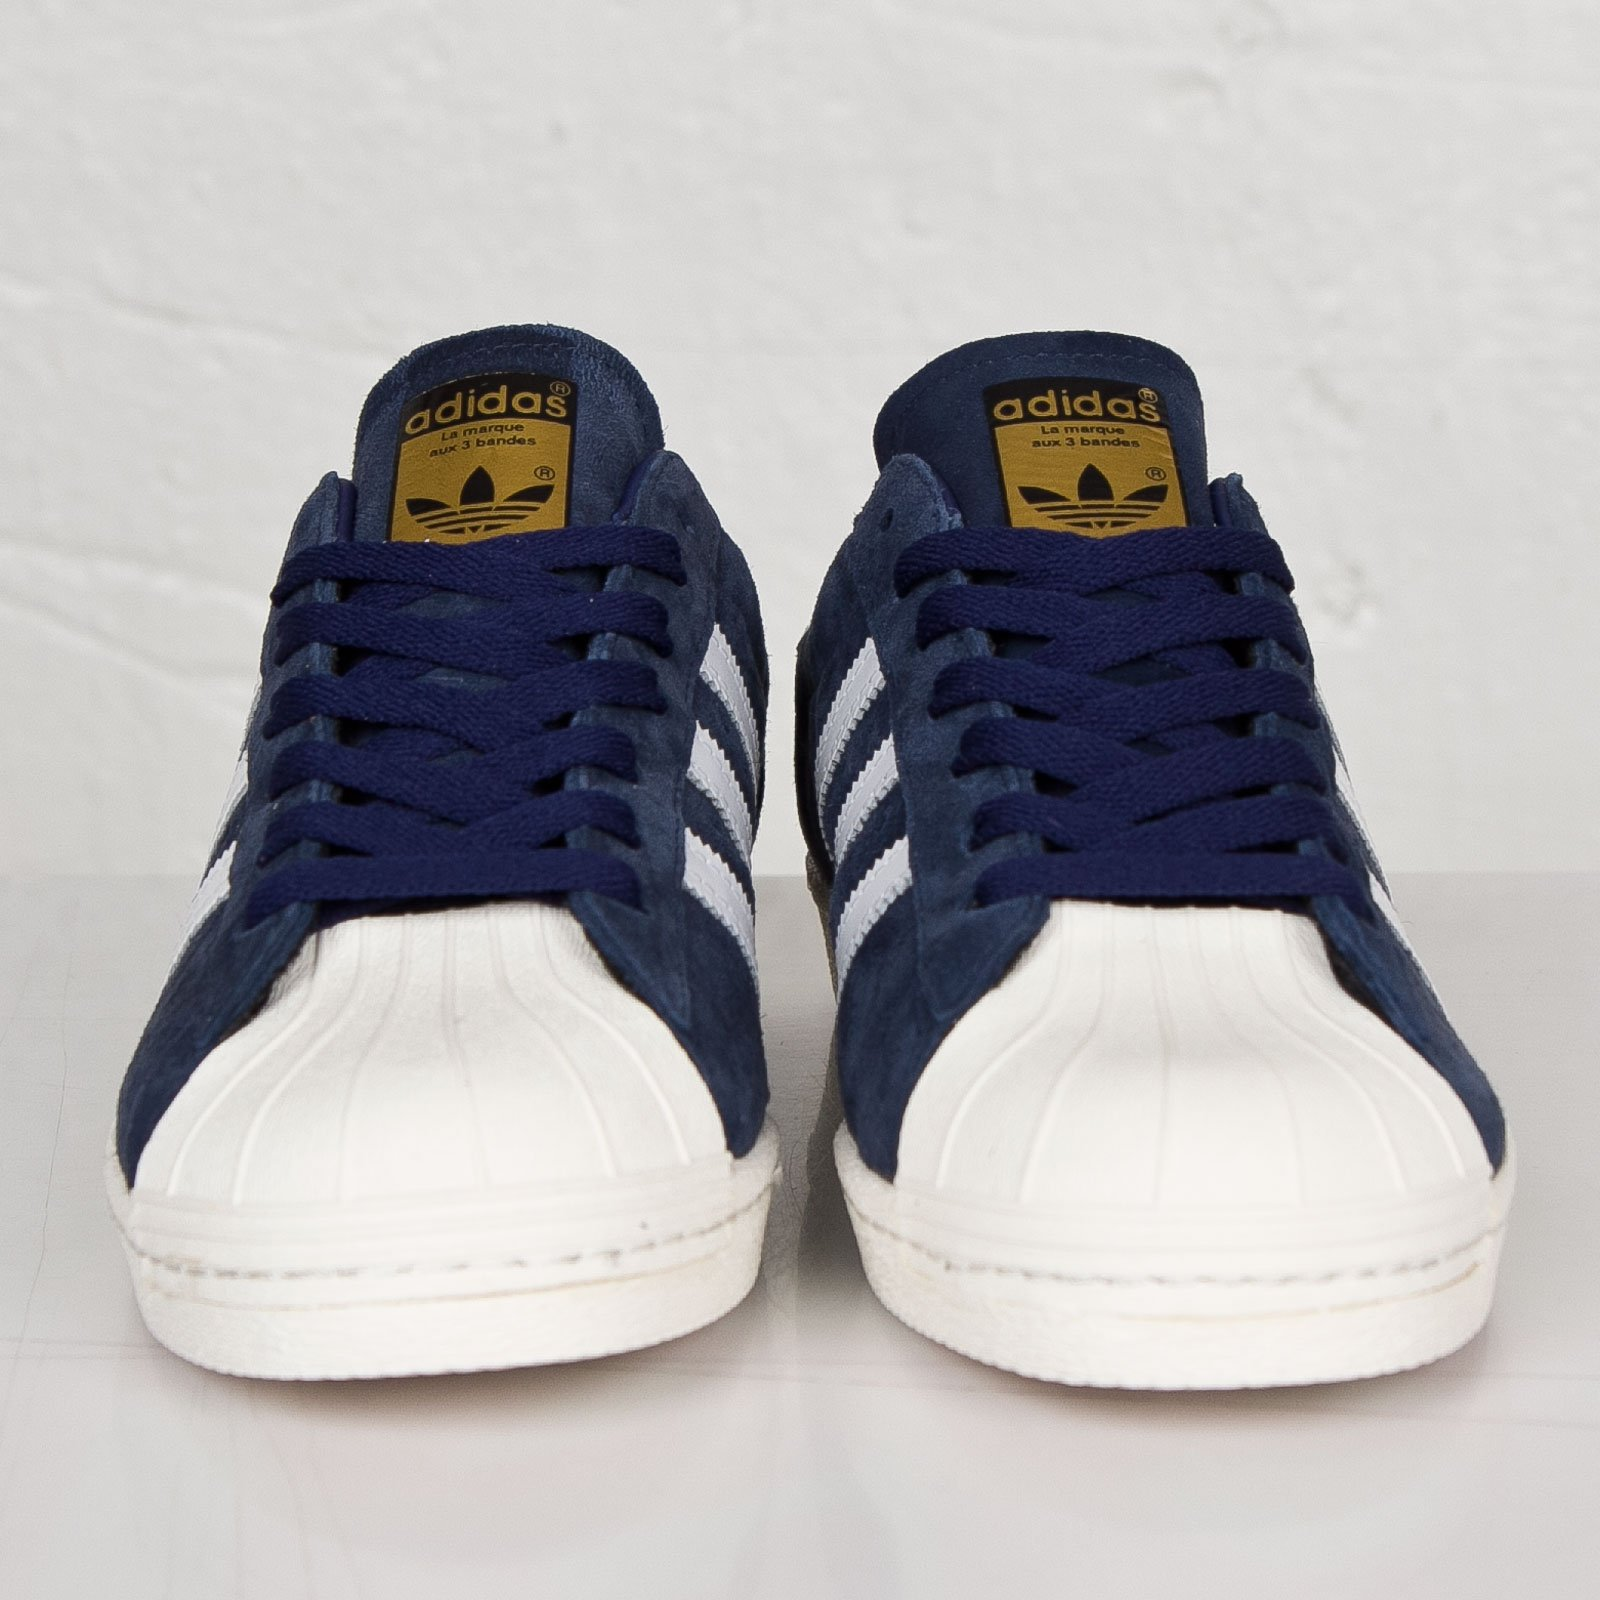 adidas superstar 80s vintage deluxe suede shoes black/white/gold